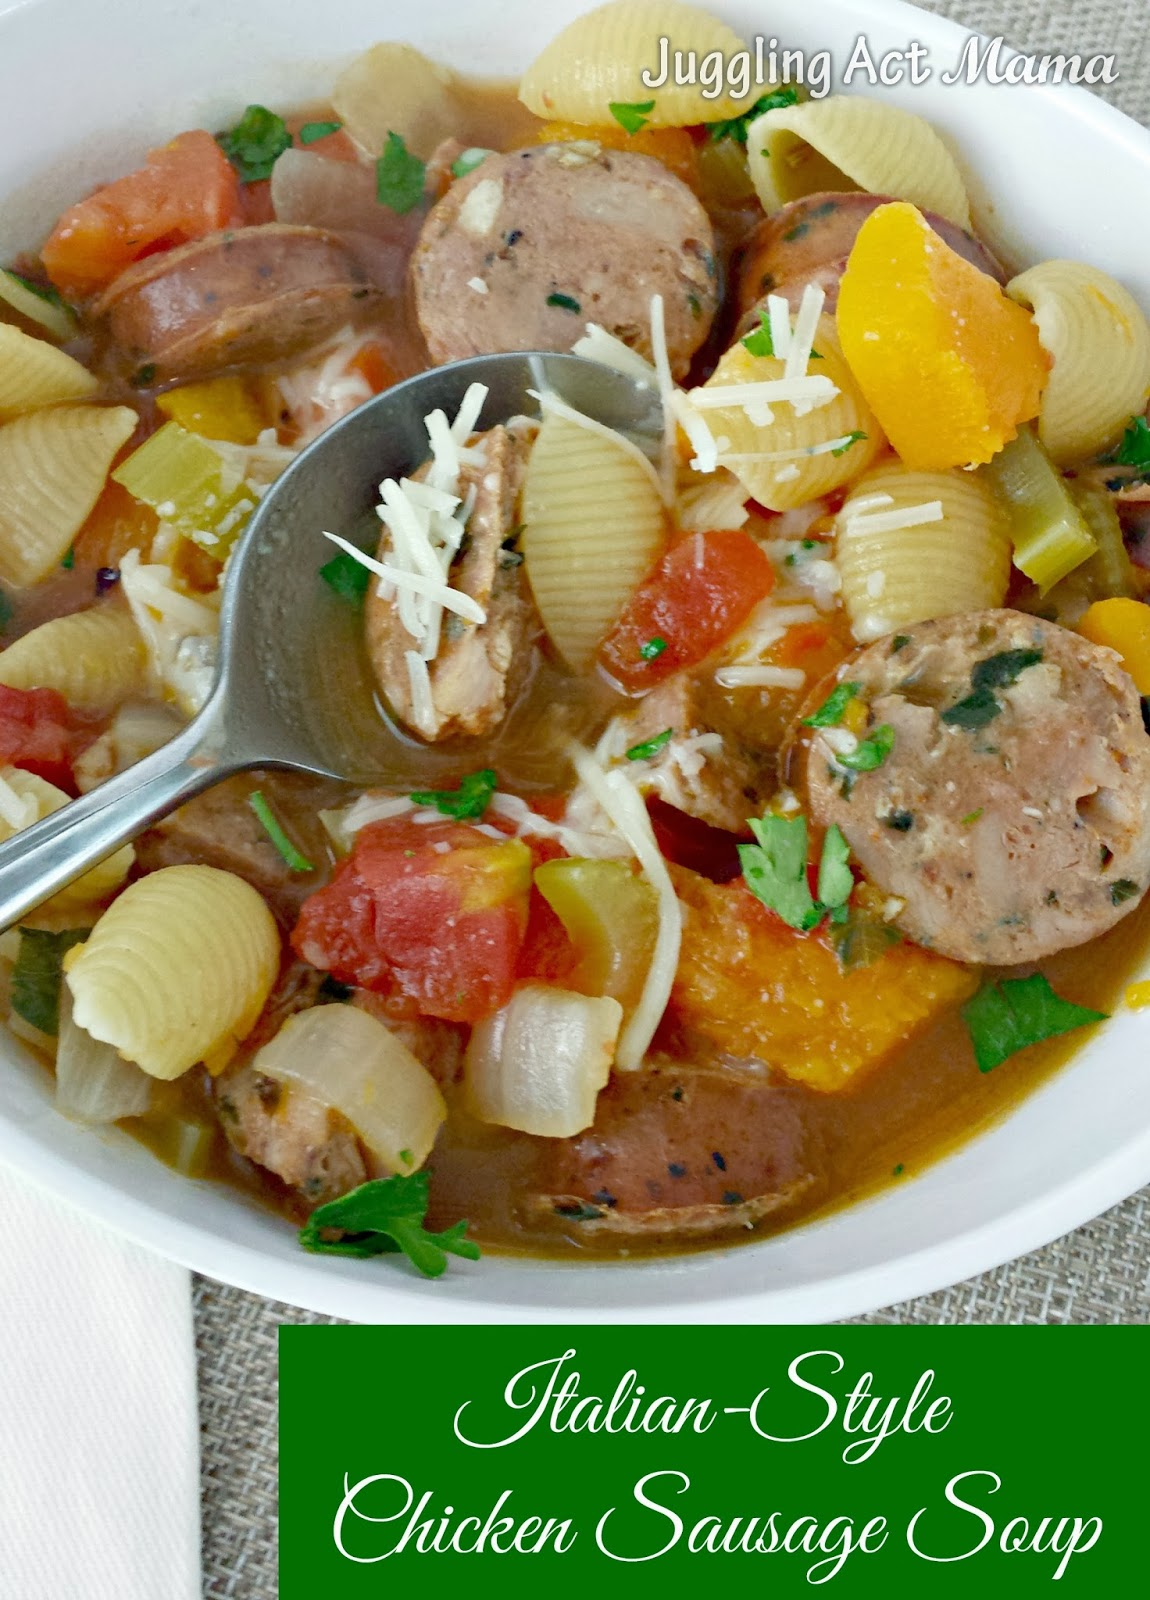 Italian Style Chicken Sausage Soup can be made in a flash on the stovetop, or can simmer away all day in slow cooker. Either way it's a hearty and delicious family meal!